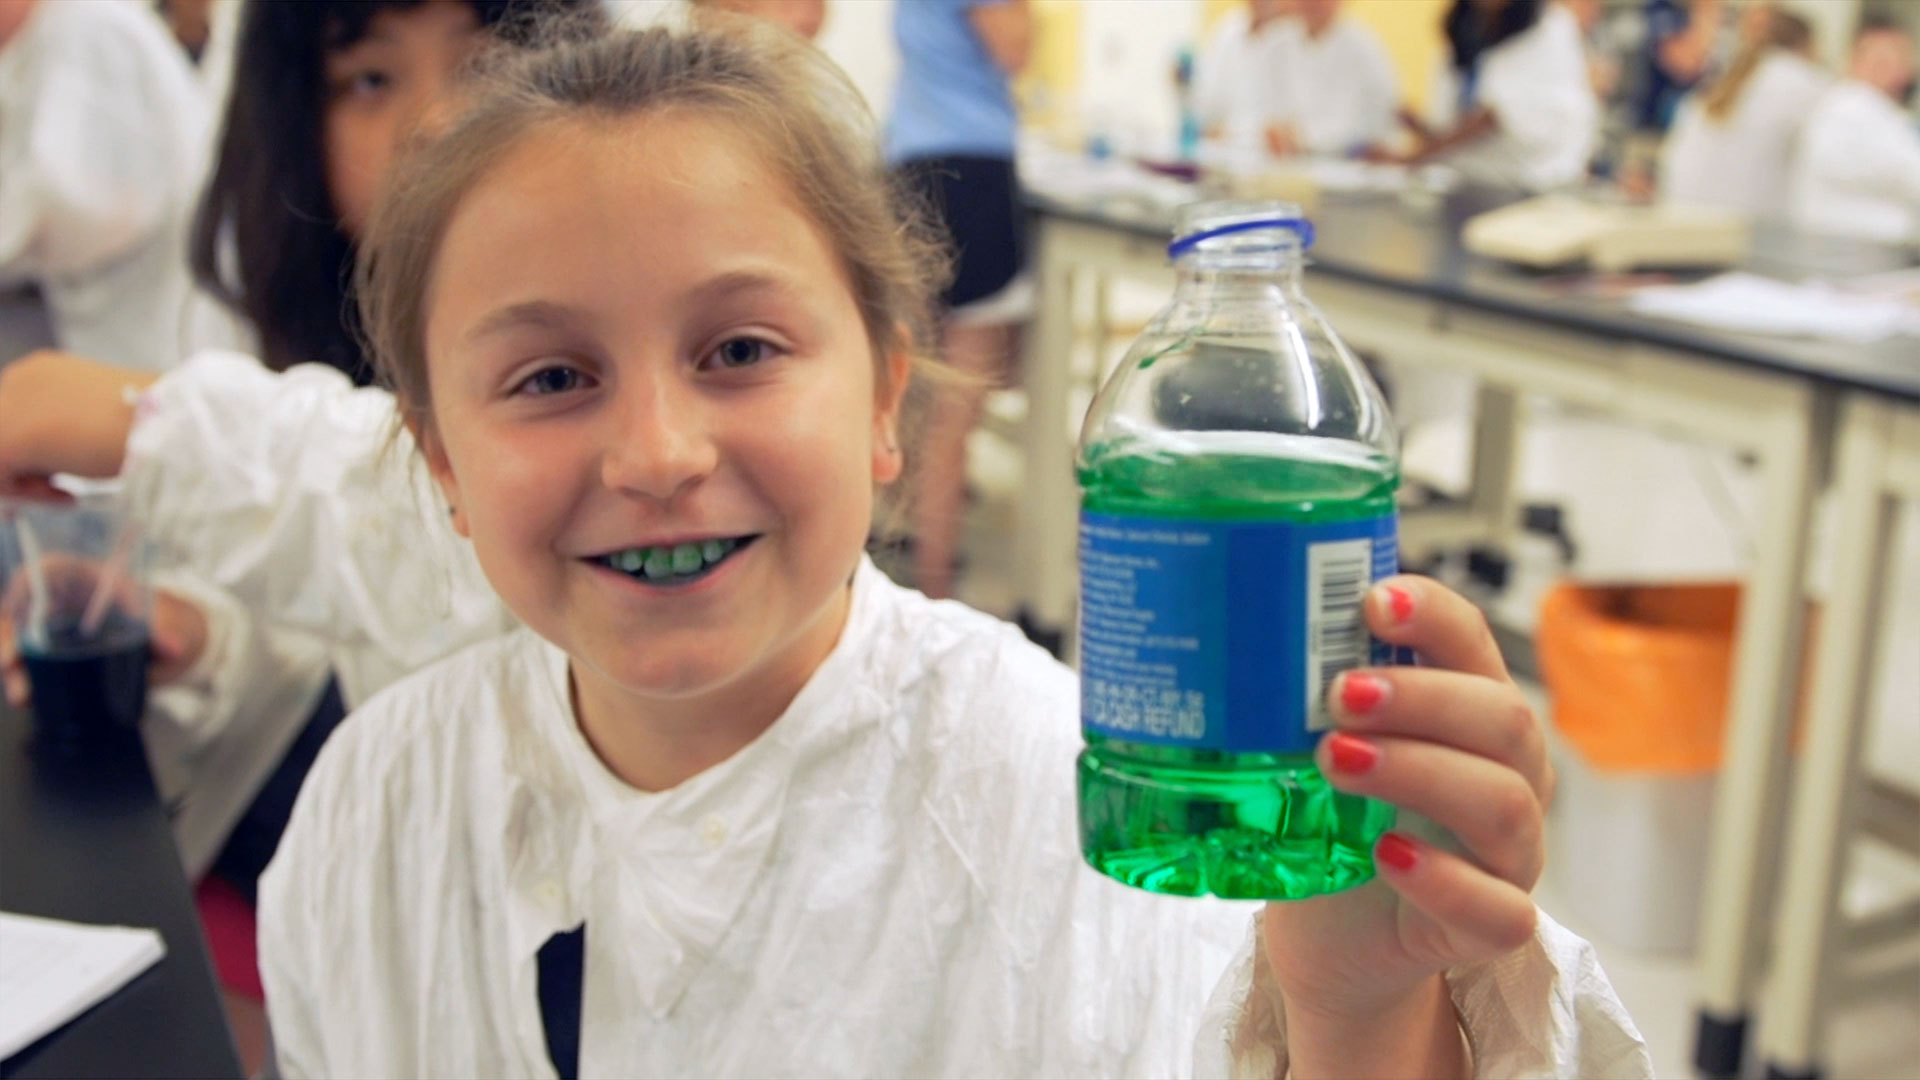 Young girl shows water bottle dyed green from the food coloring in her mouth